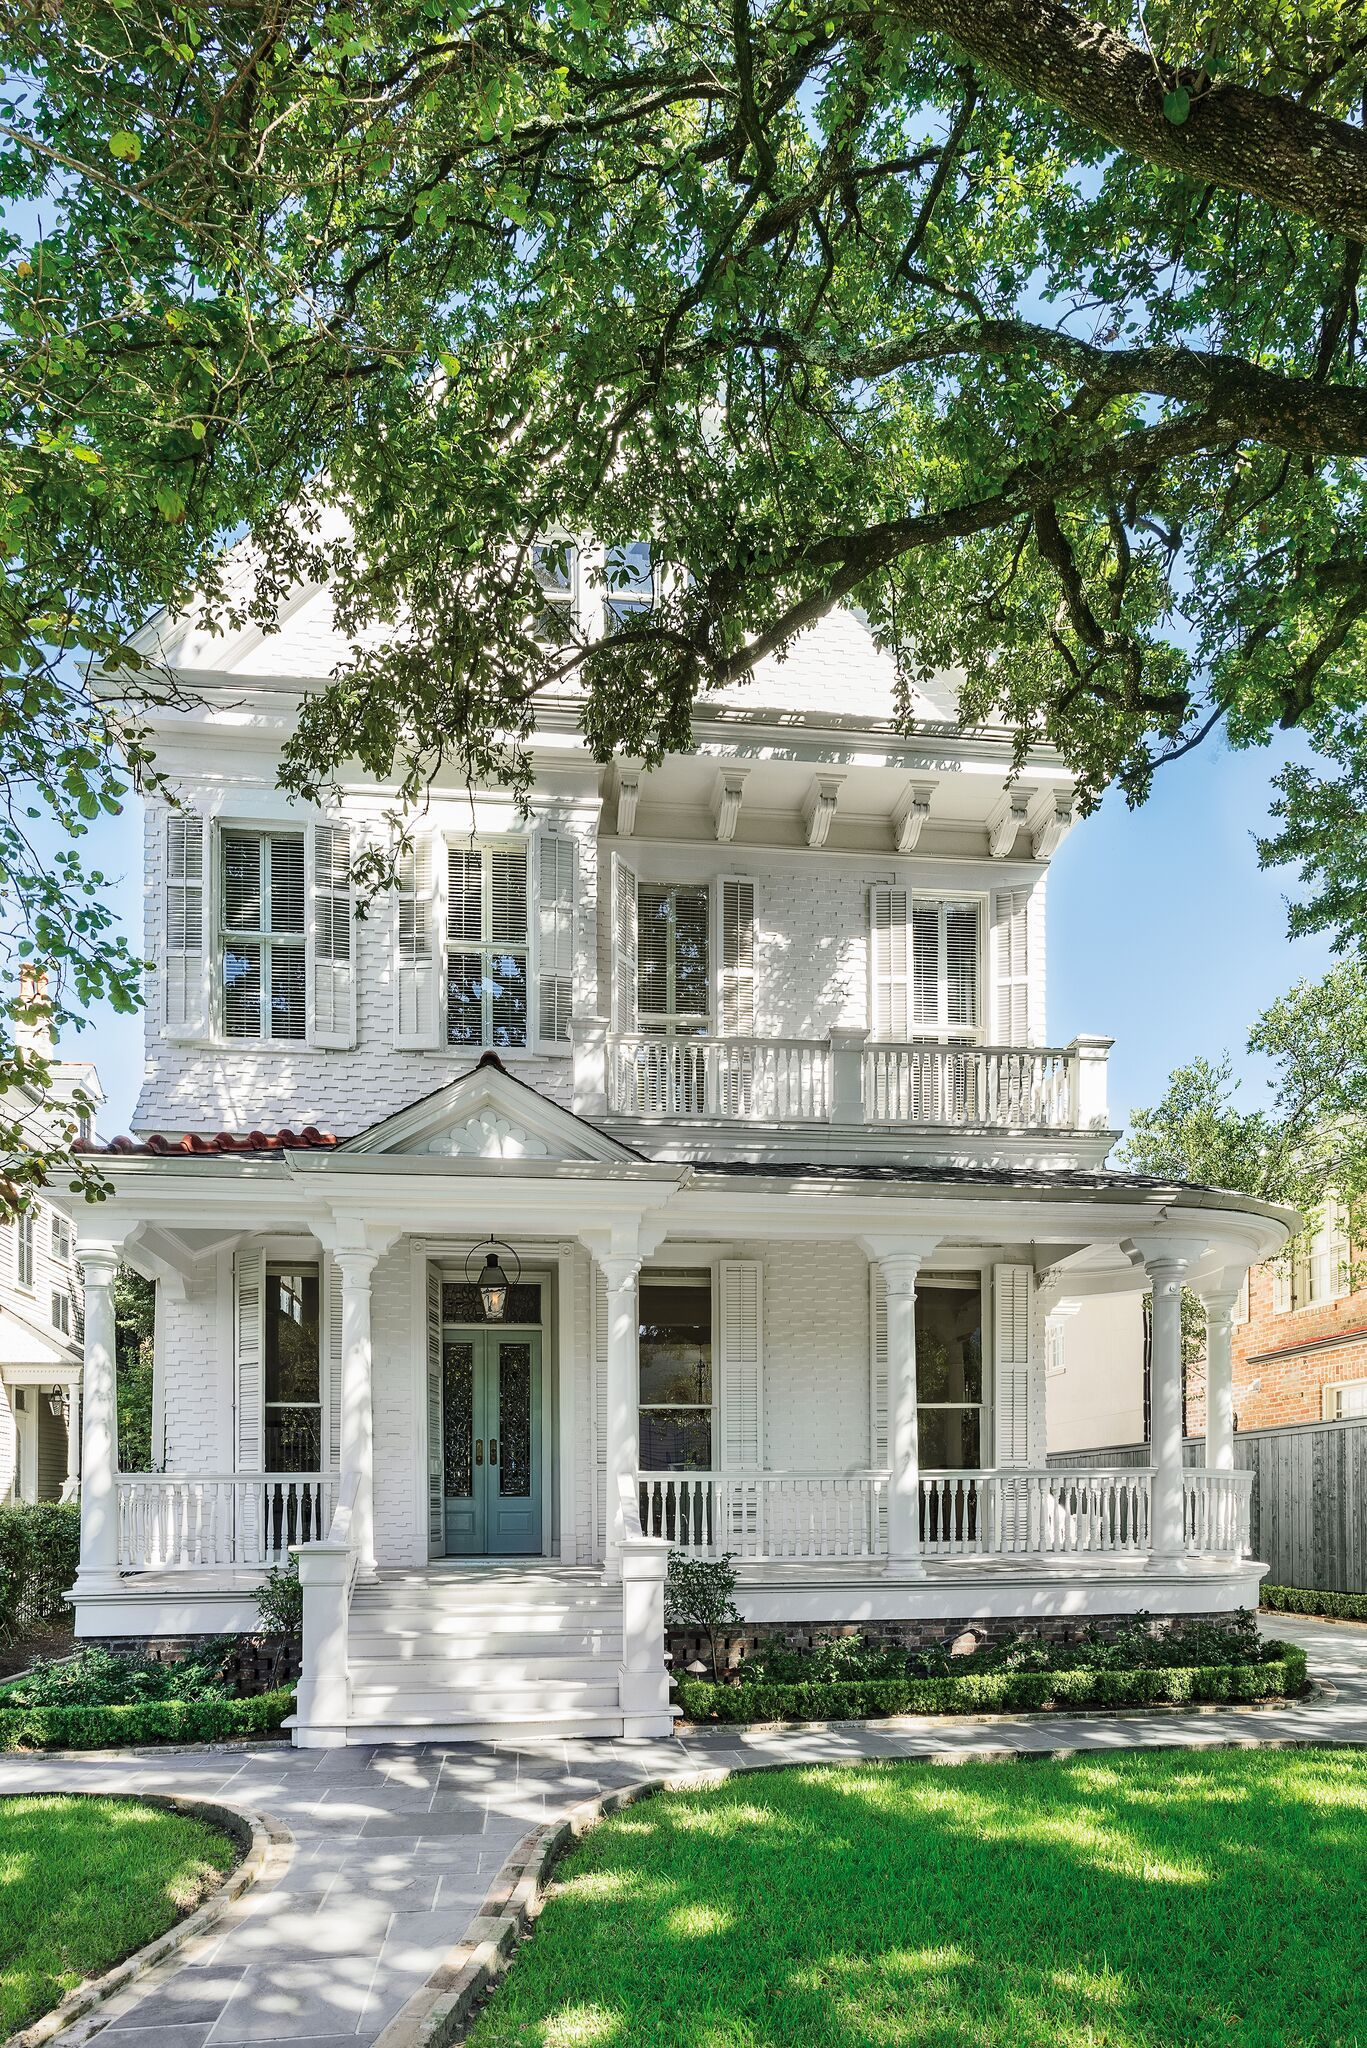 Stately white painted Victorian home has breathtaking architecture and curb appeal in the lower Garden District of New Orleans.